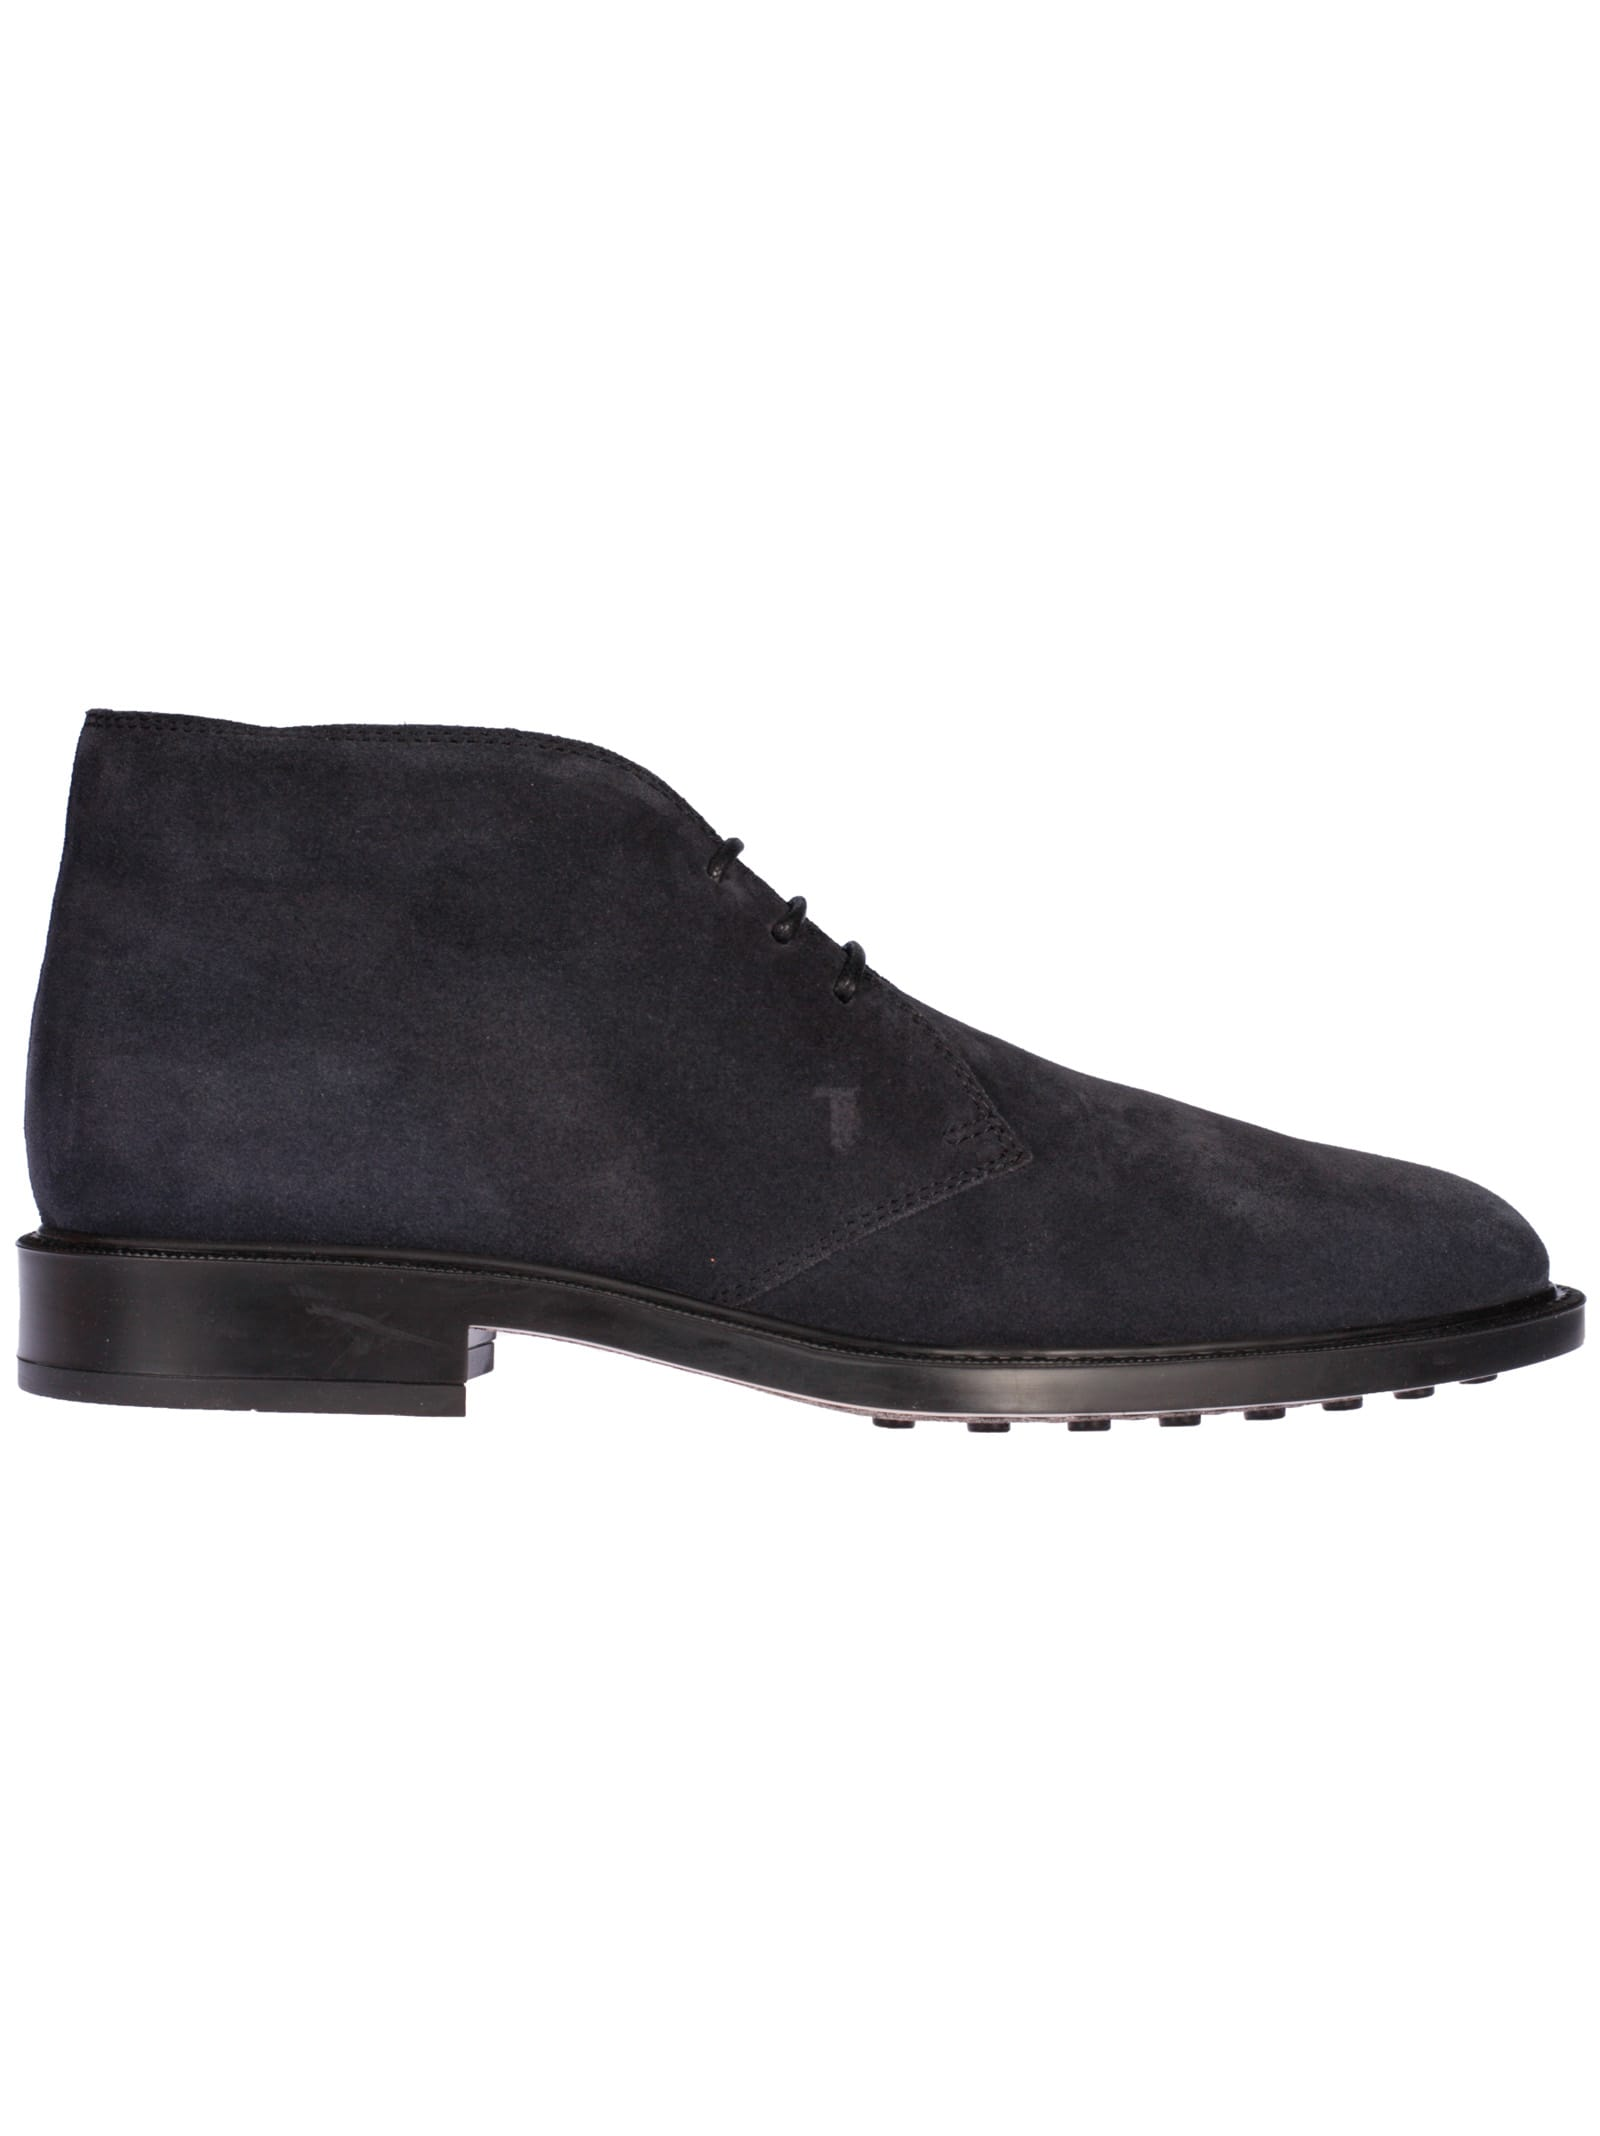 Tods Laced-up Ankle Boots